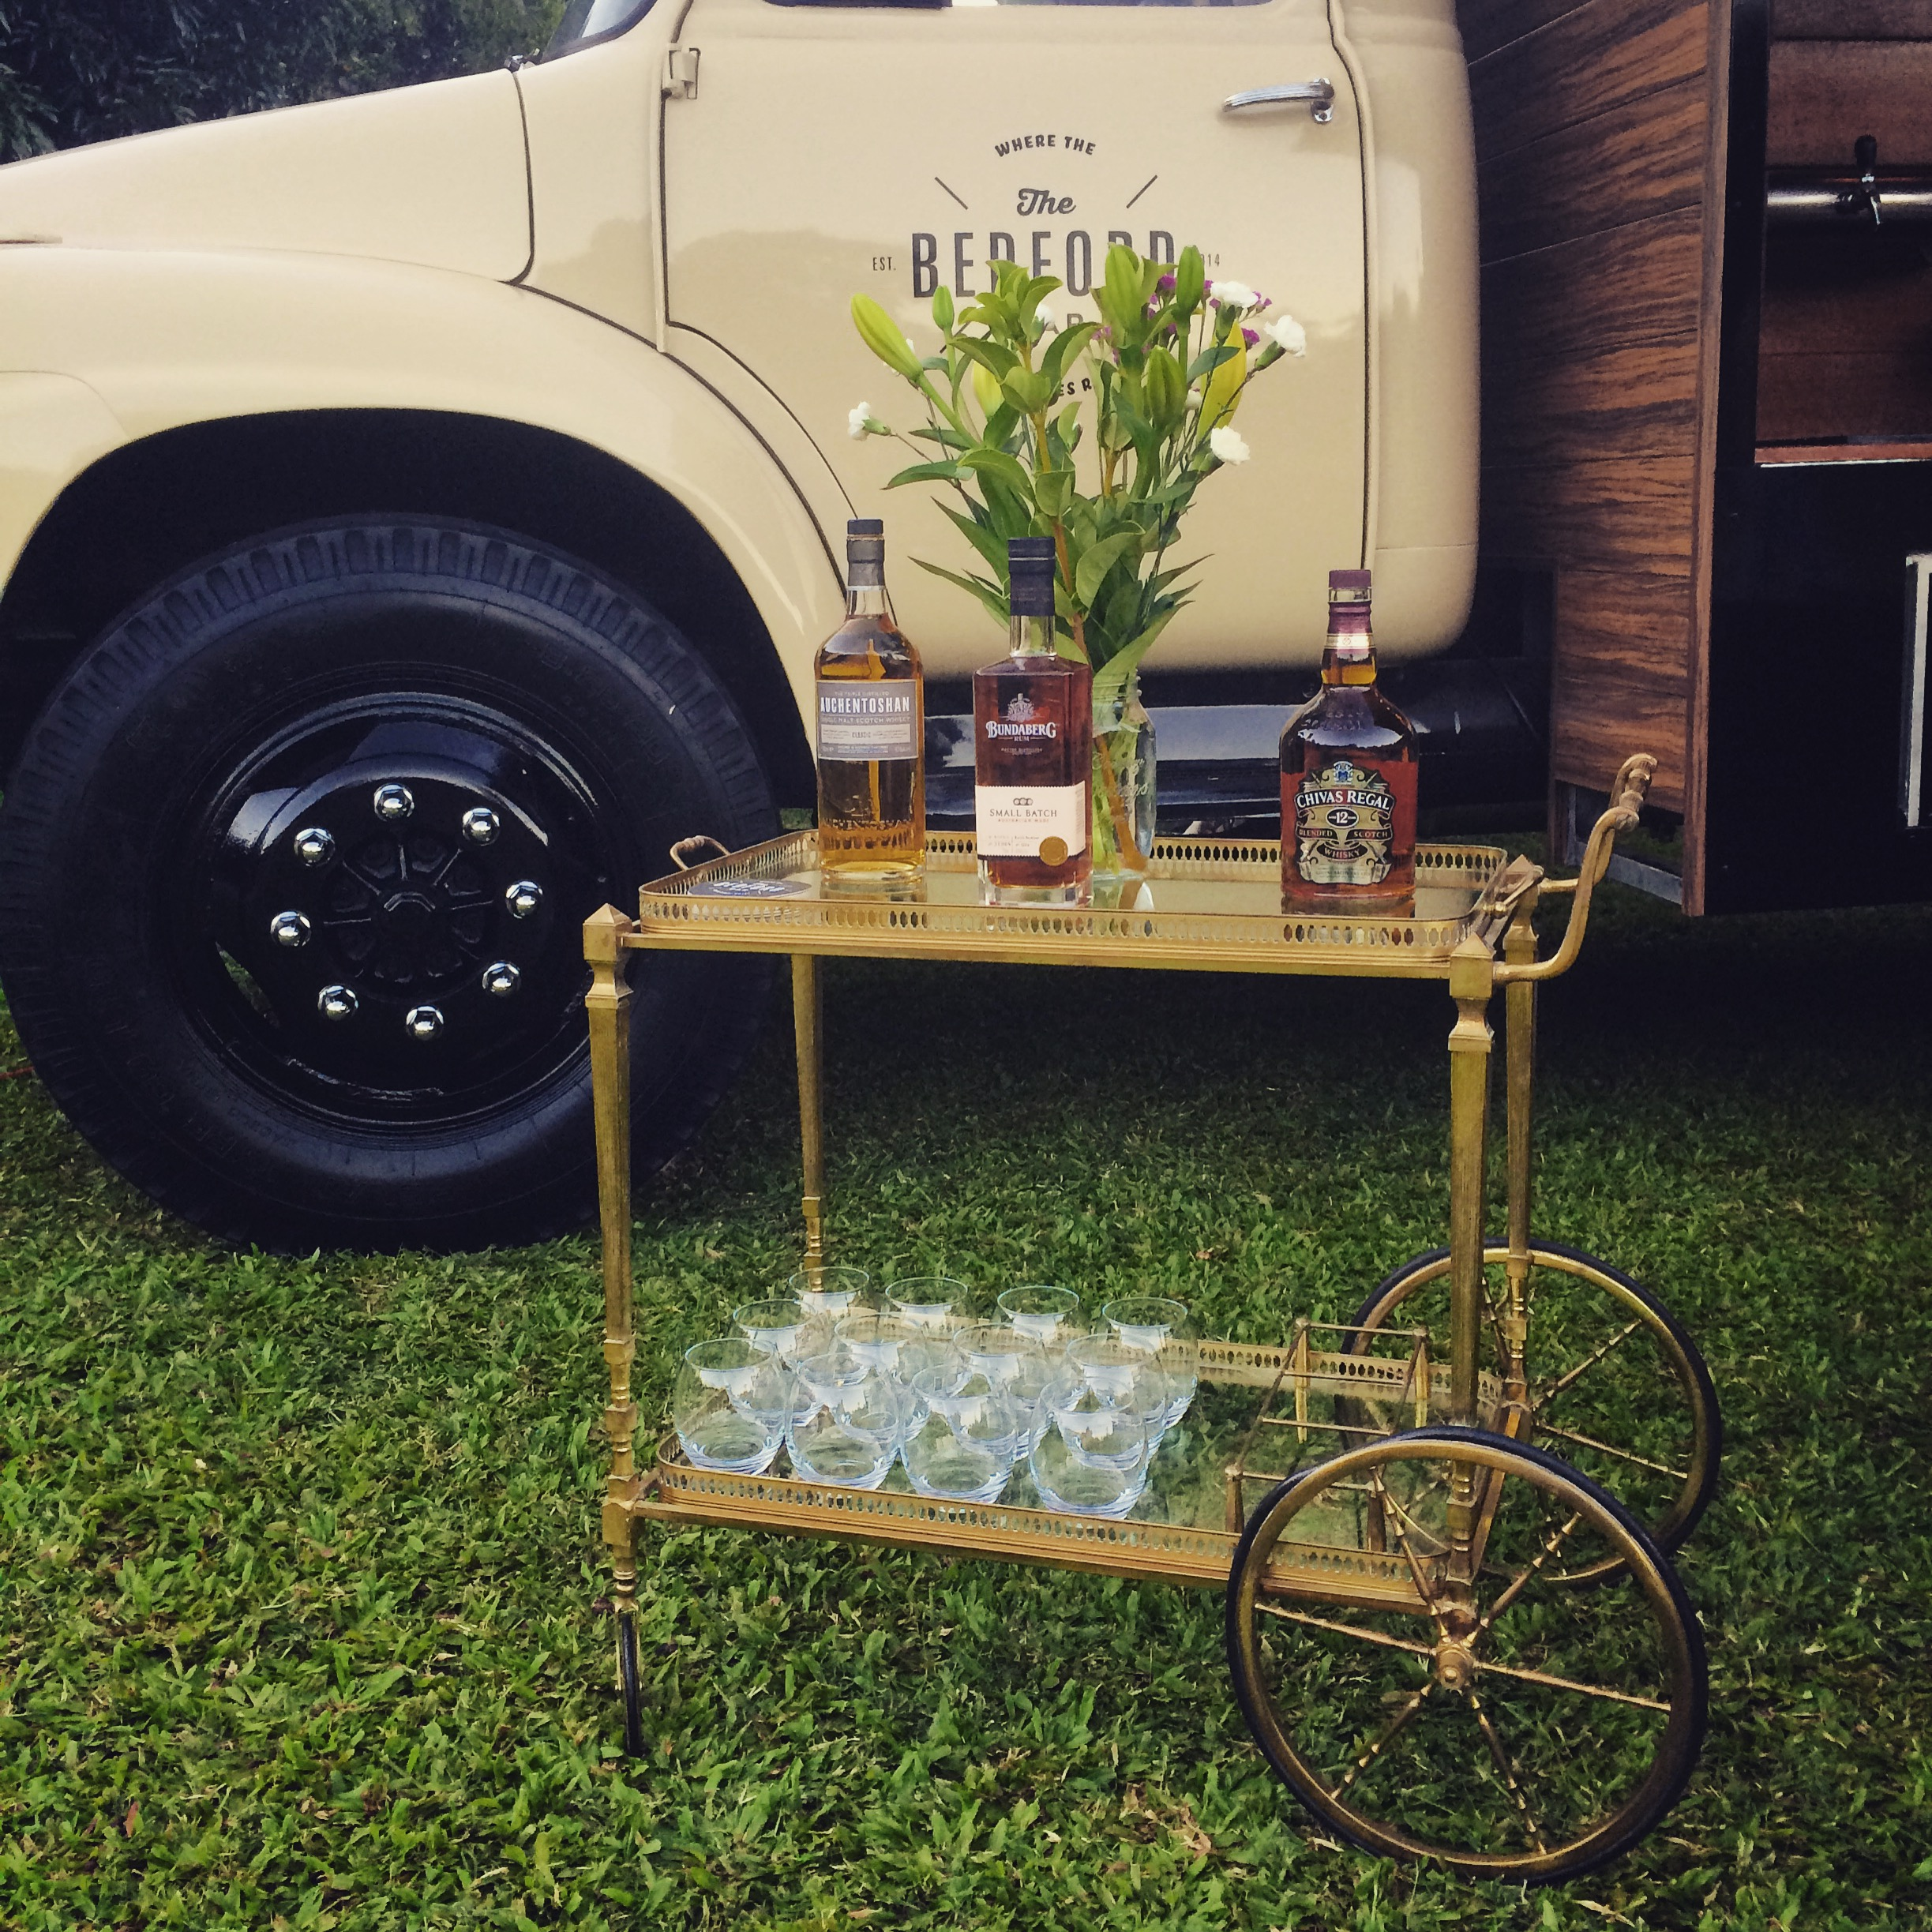 Vintage Whisky cart|The Bedford Bar